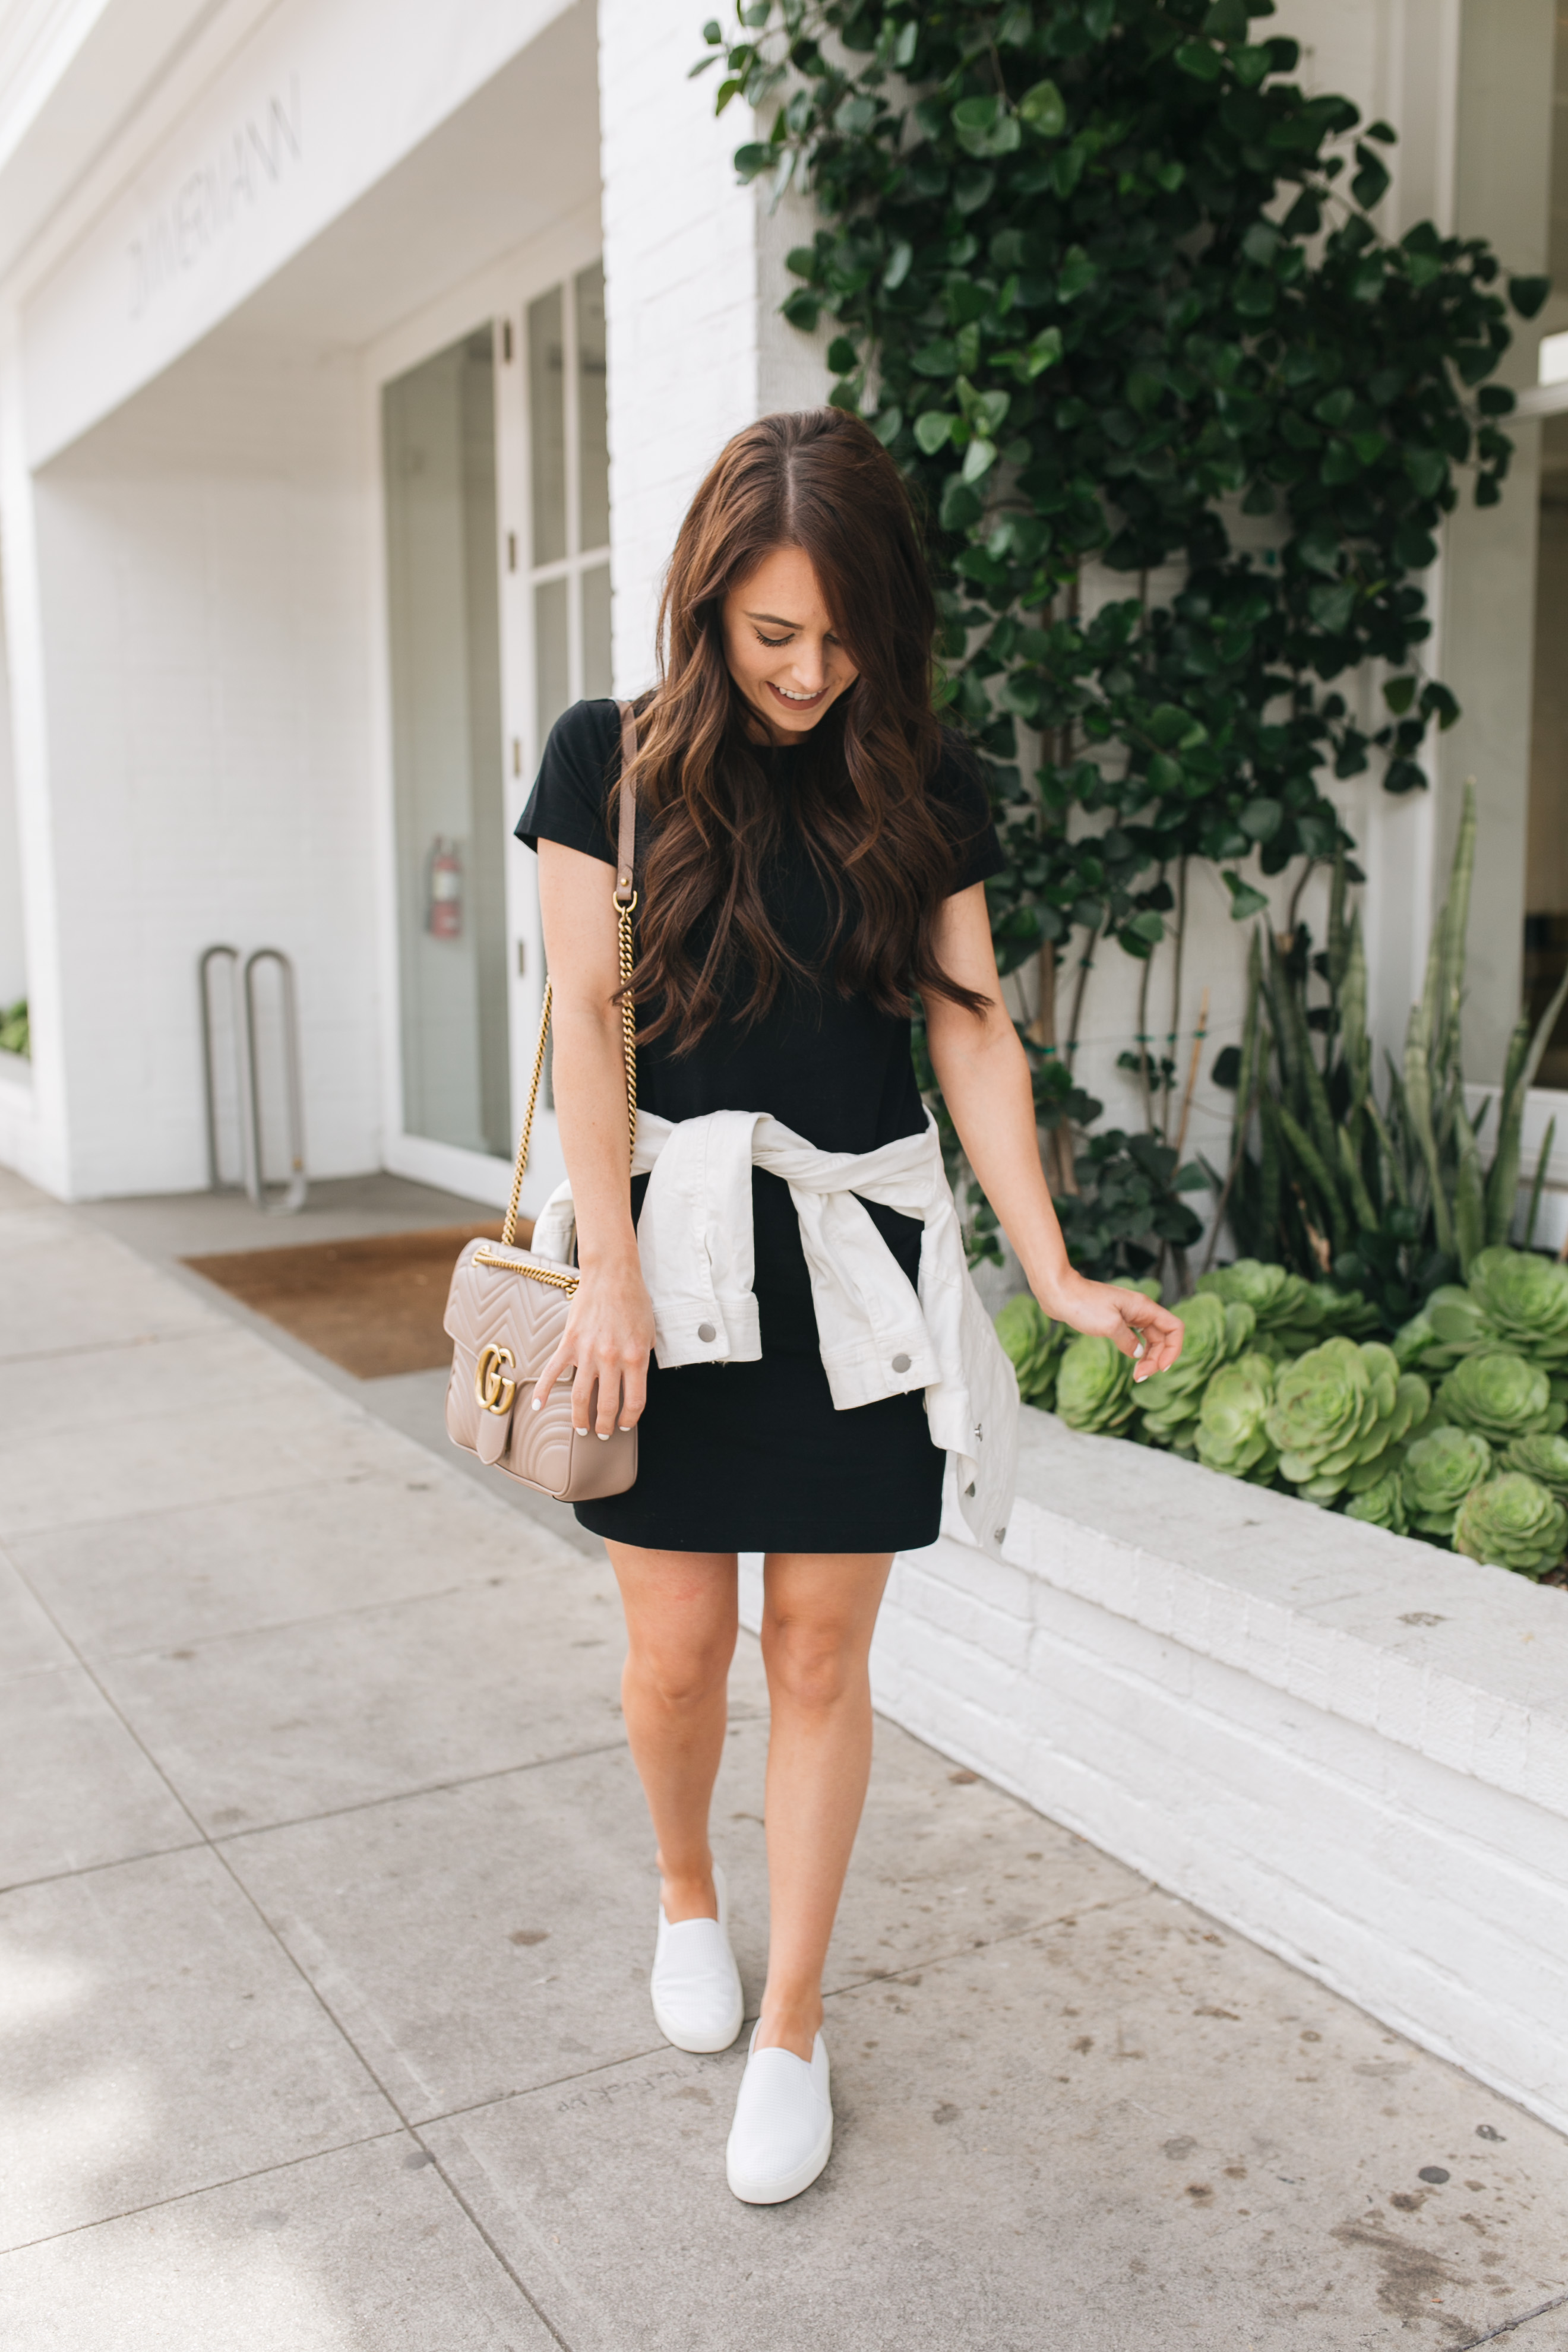 4f0a6e12ad My second tip for styling t-shirt dresses is to keep it casual! They are one  of the most casual